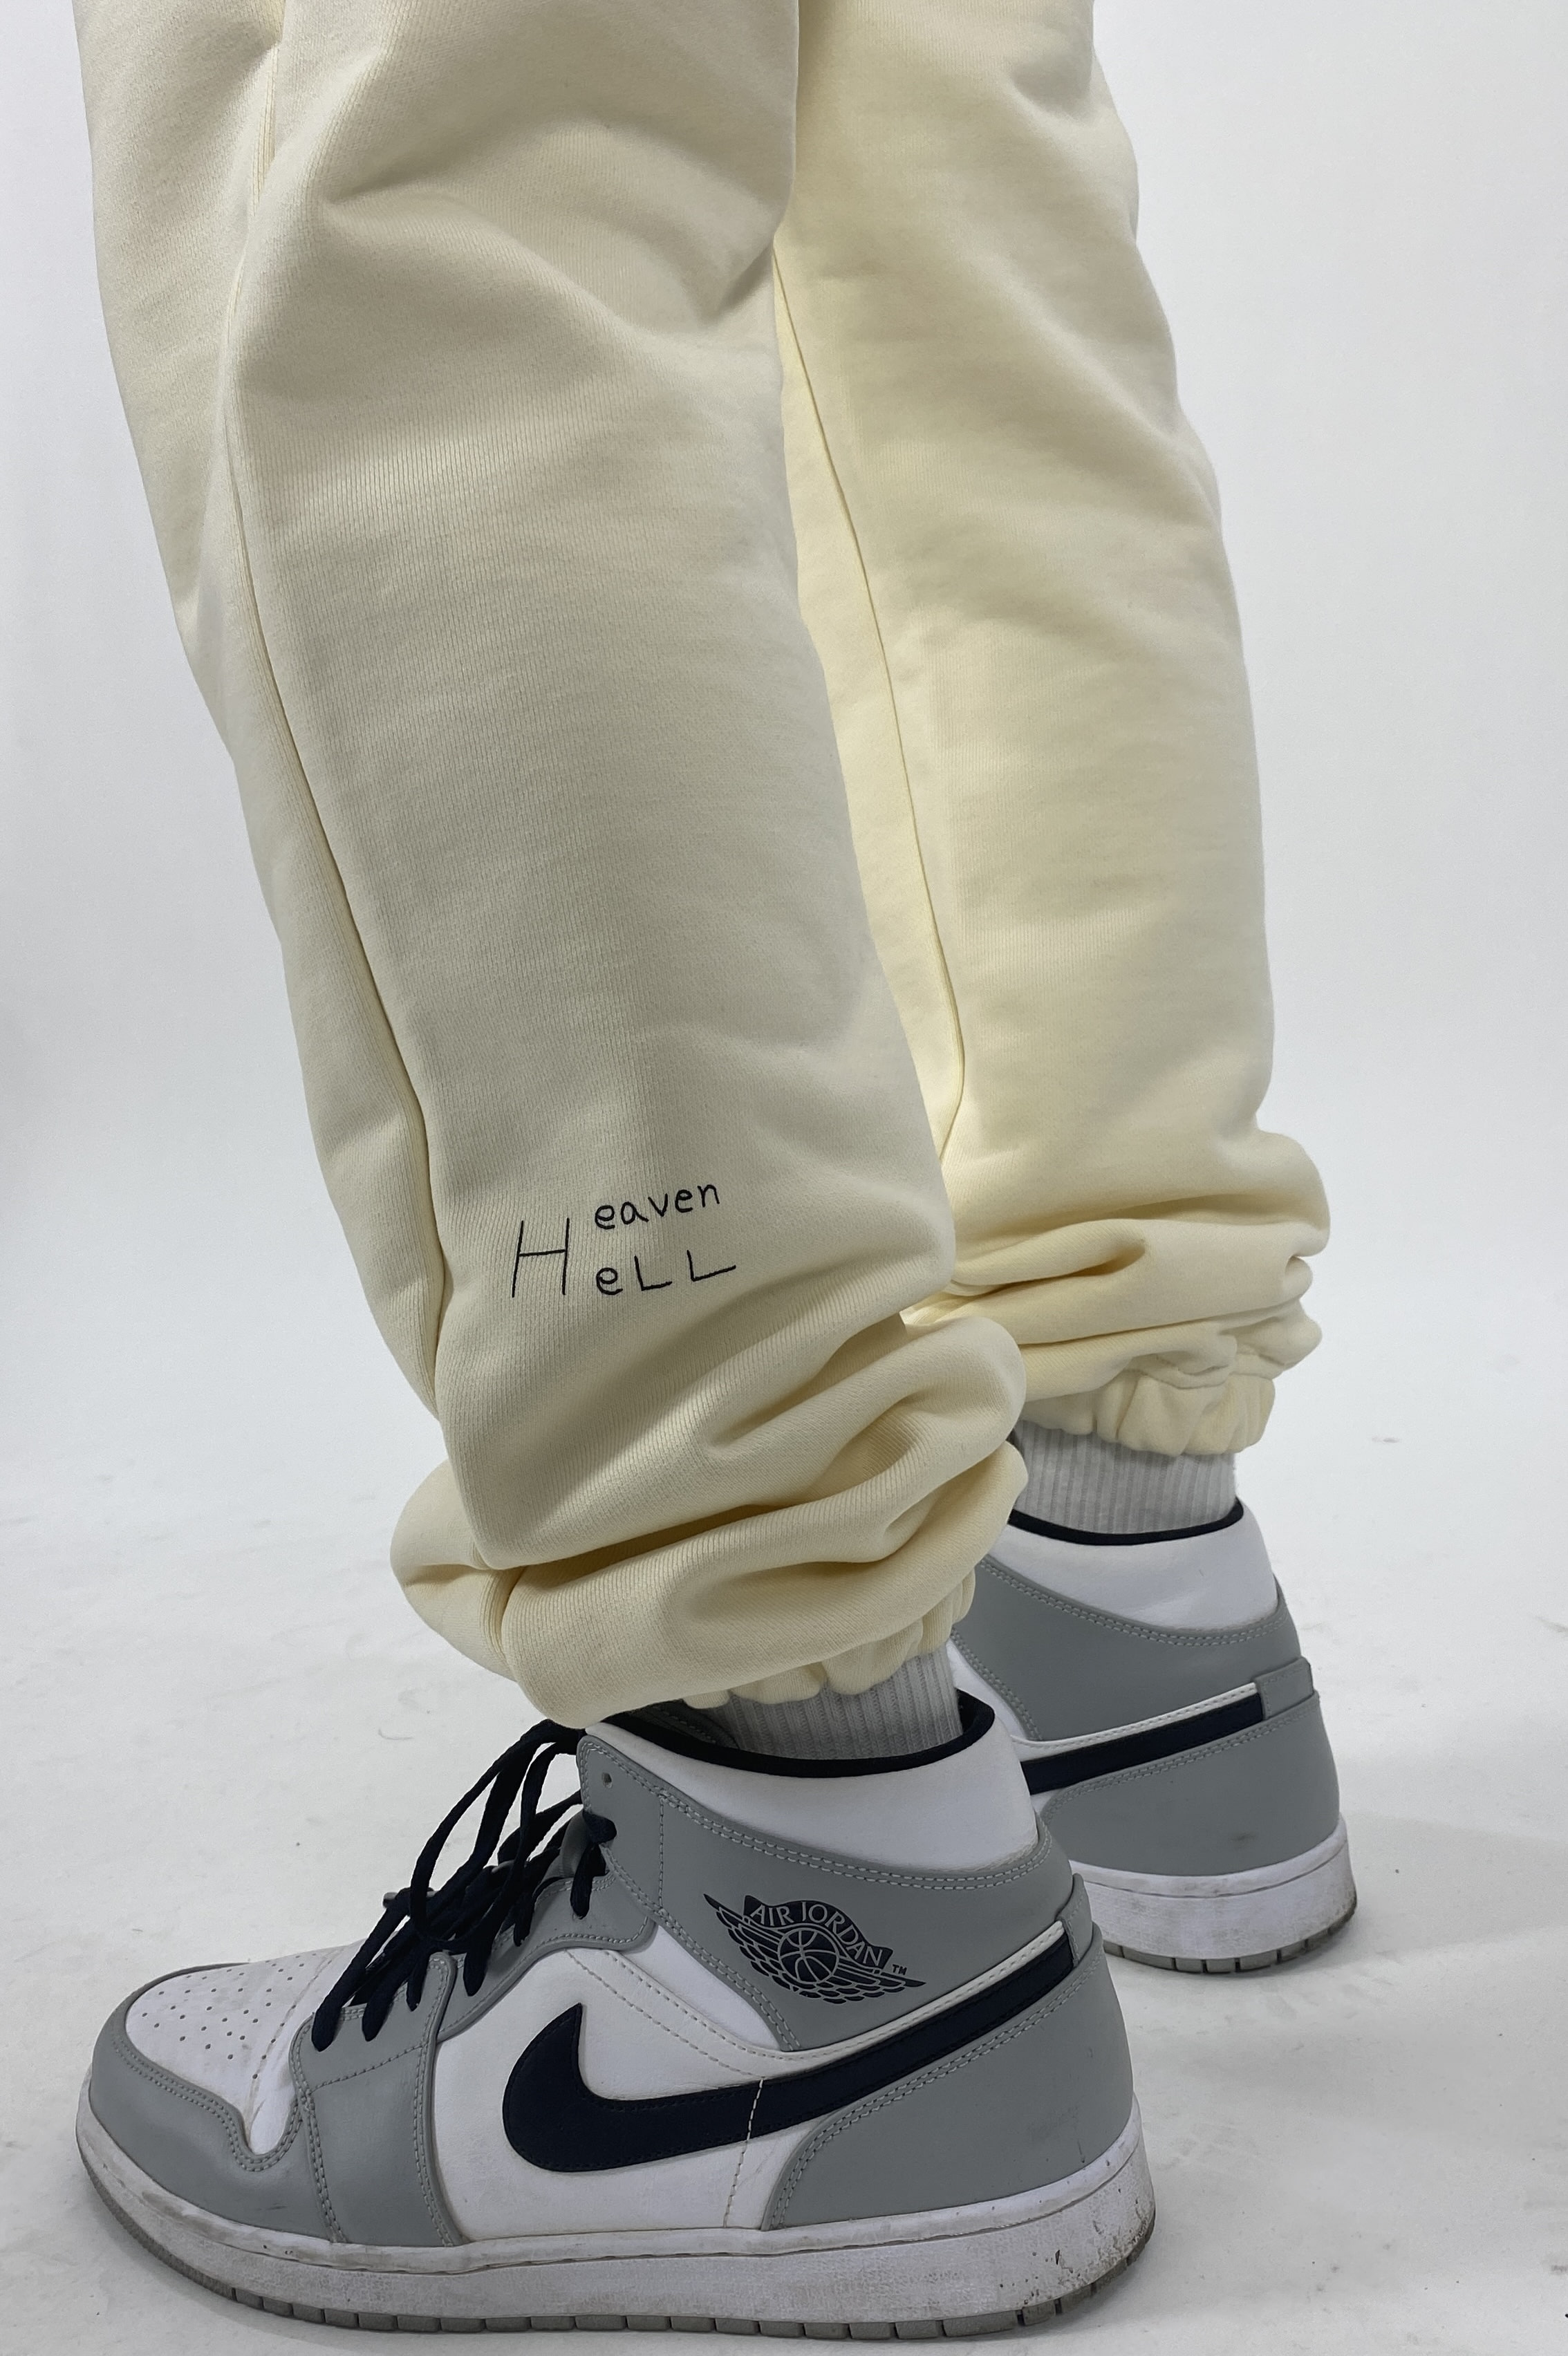 -[MOLTO SEOUL] HELL HEAVEN PANTS - CREAM